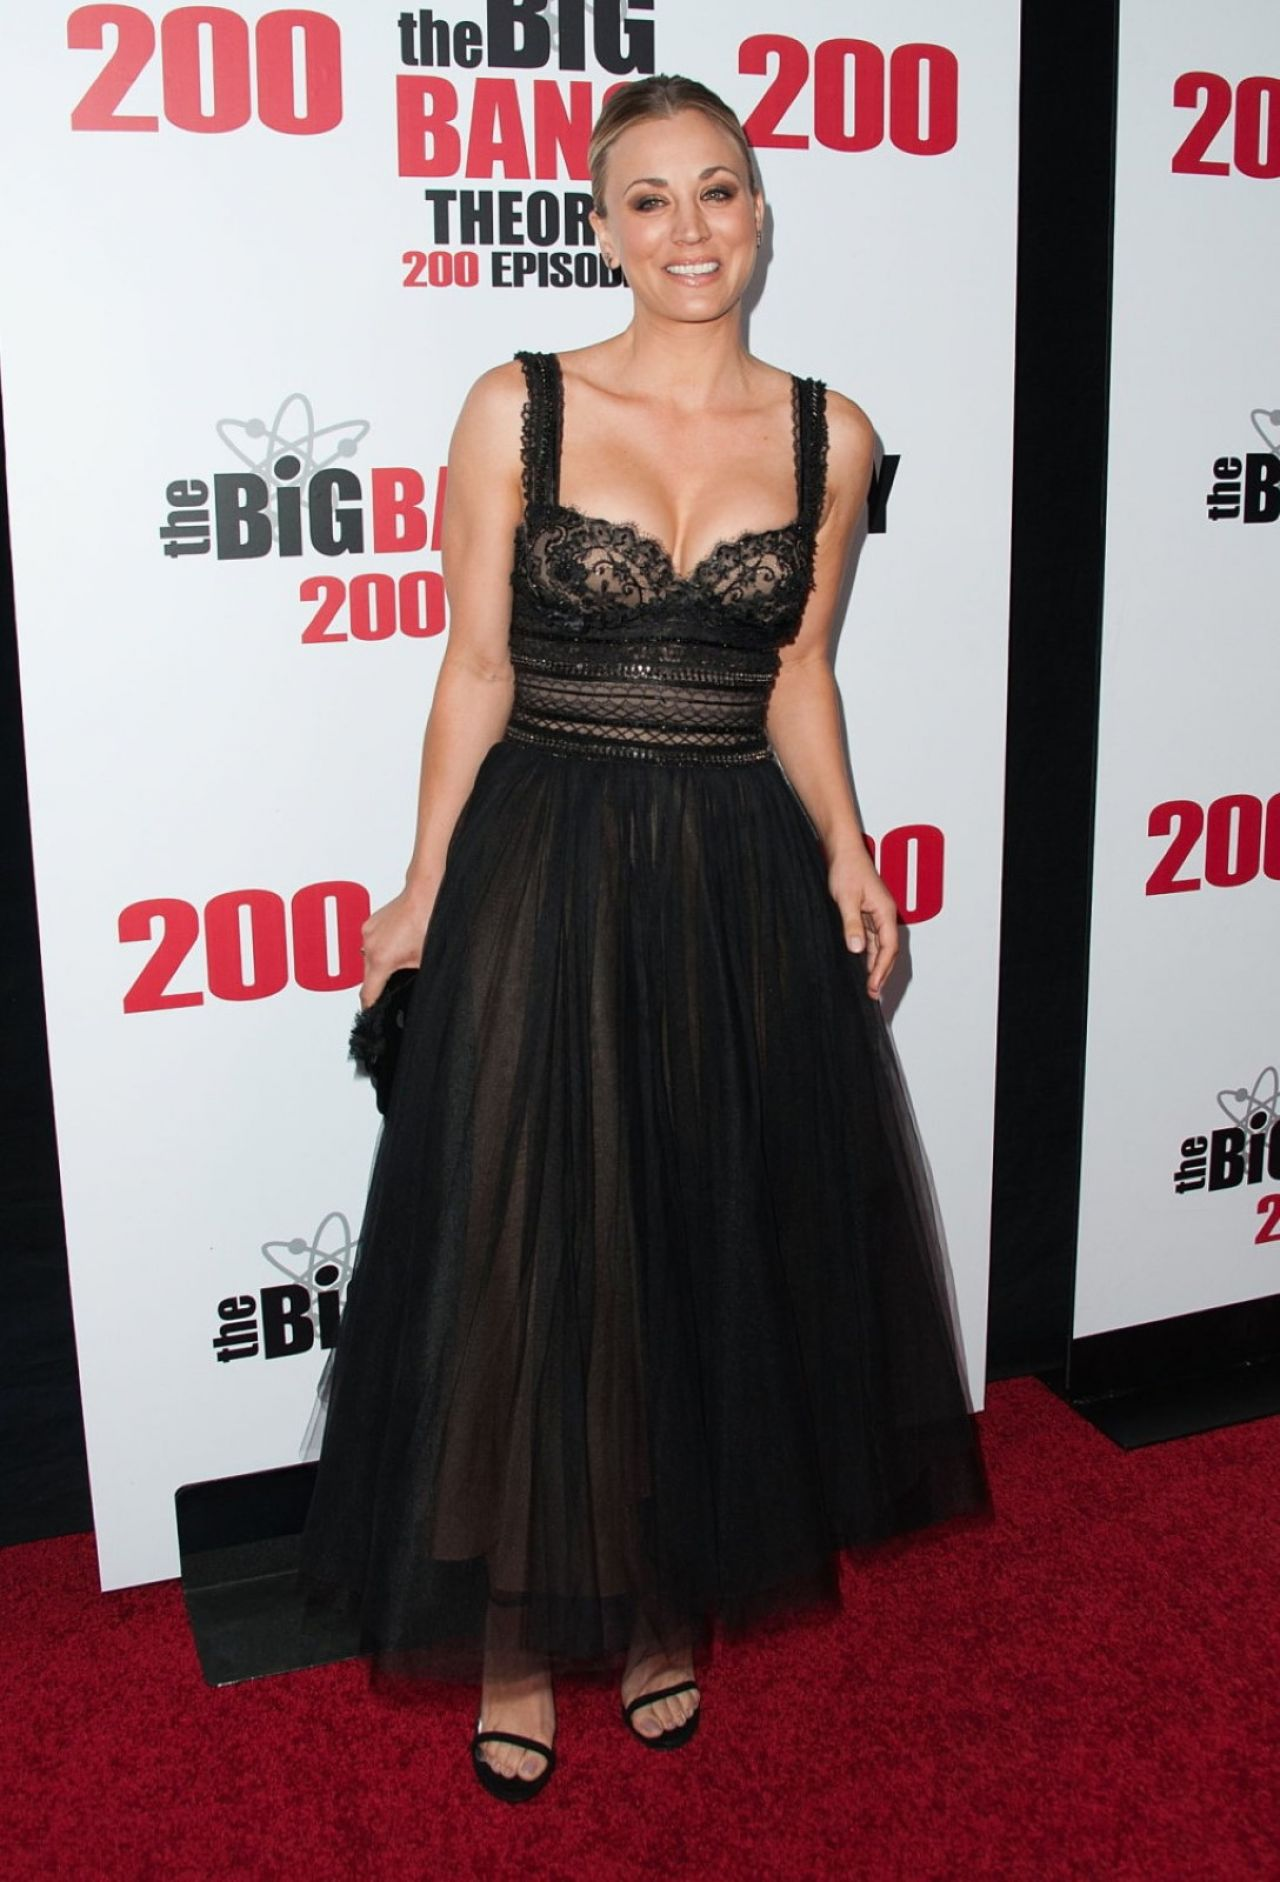 kaley-cuoco-cbs-s-the-big-bang-theory-celebrates-200th-episode-in-los-angeles-1